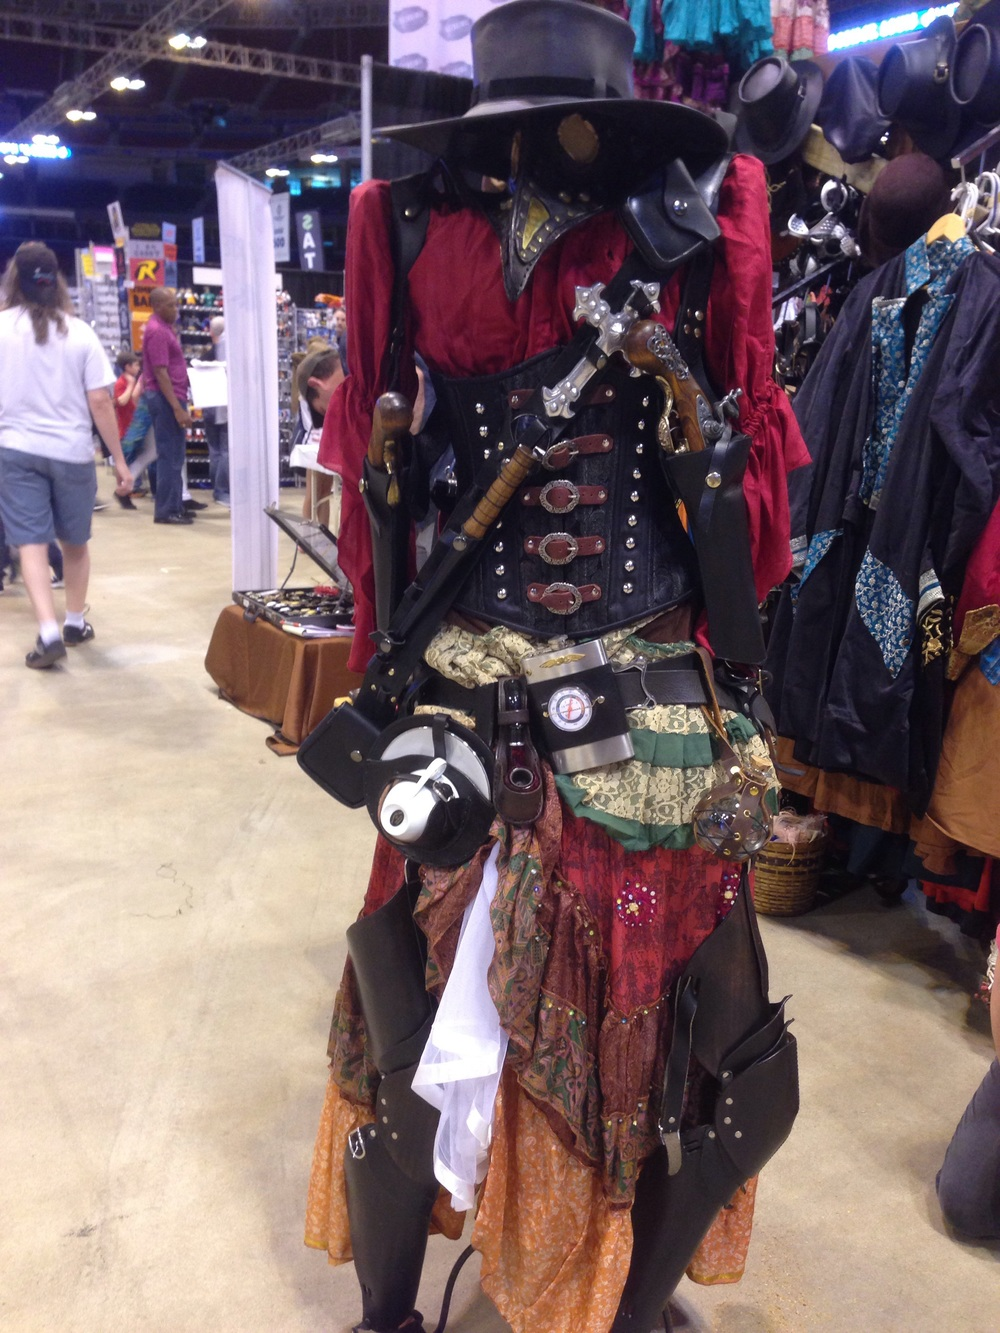 Wicked Steampunk attire!